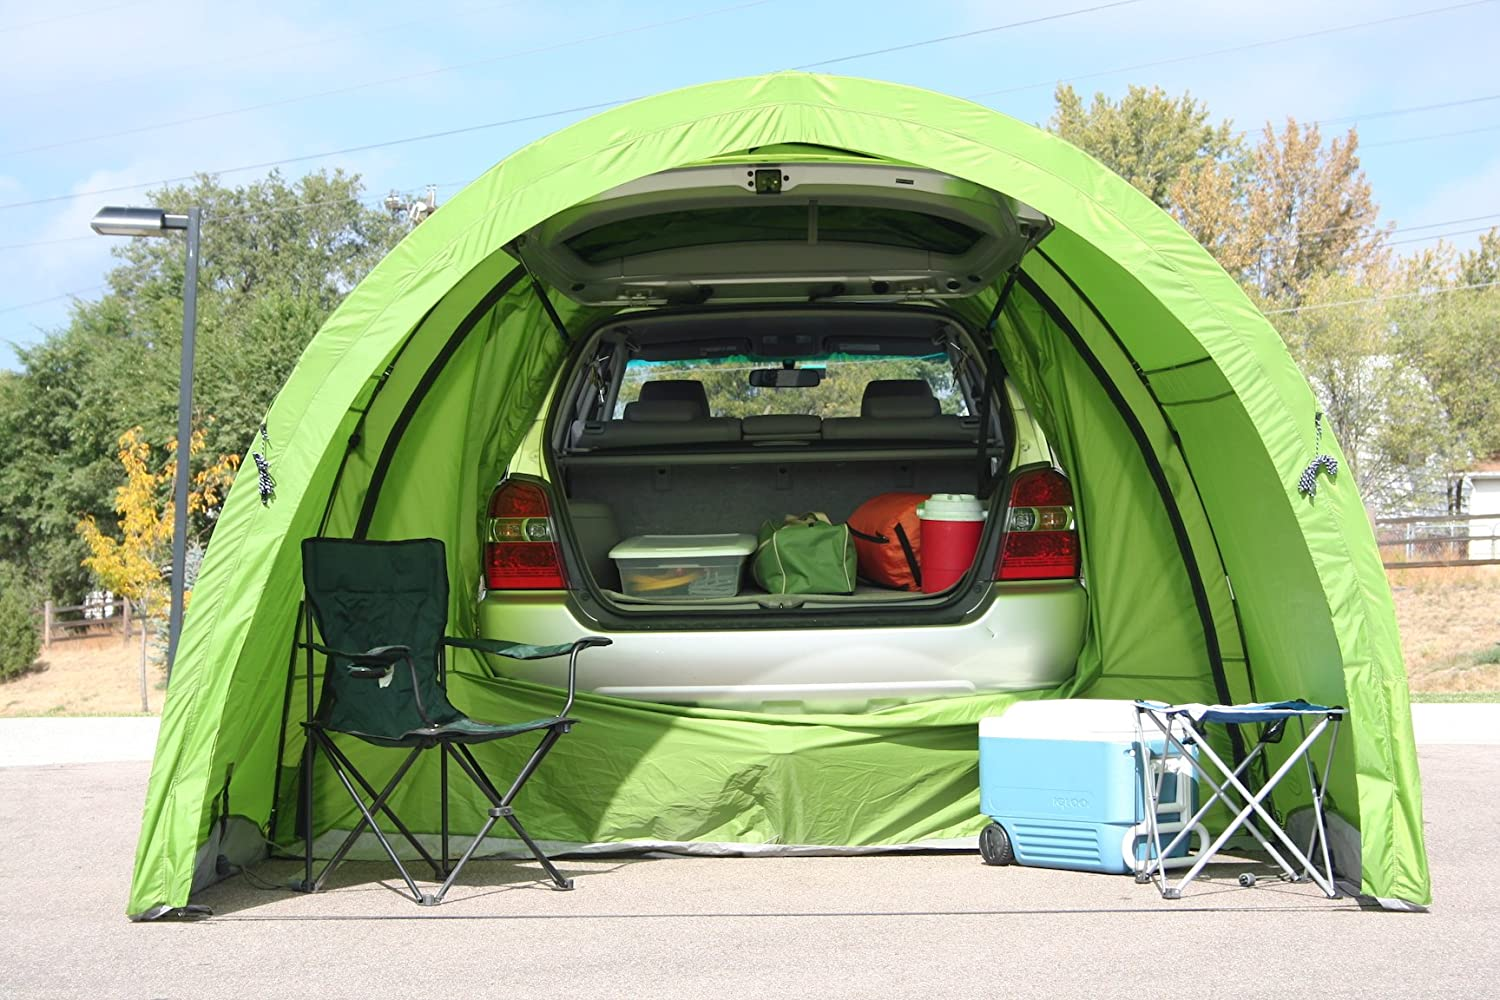 & Amazon.com: ArcHaus Shelter and Tailgate Tent 6S: Sports u0026 Outdoors